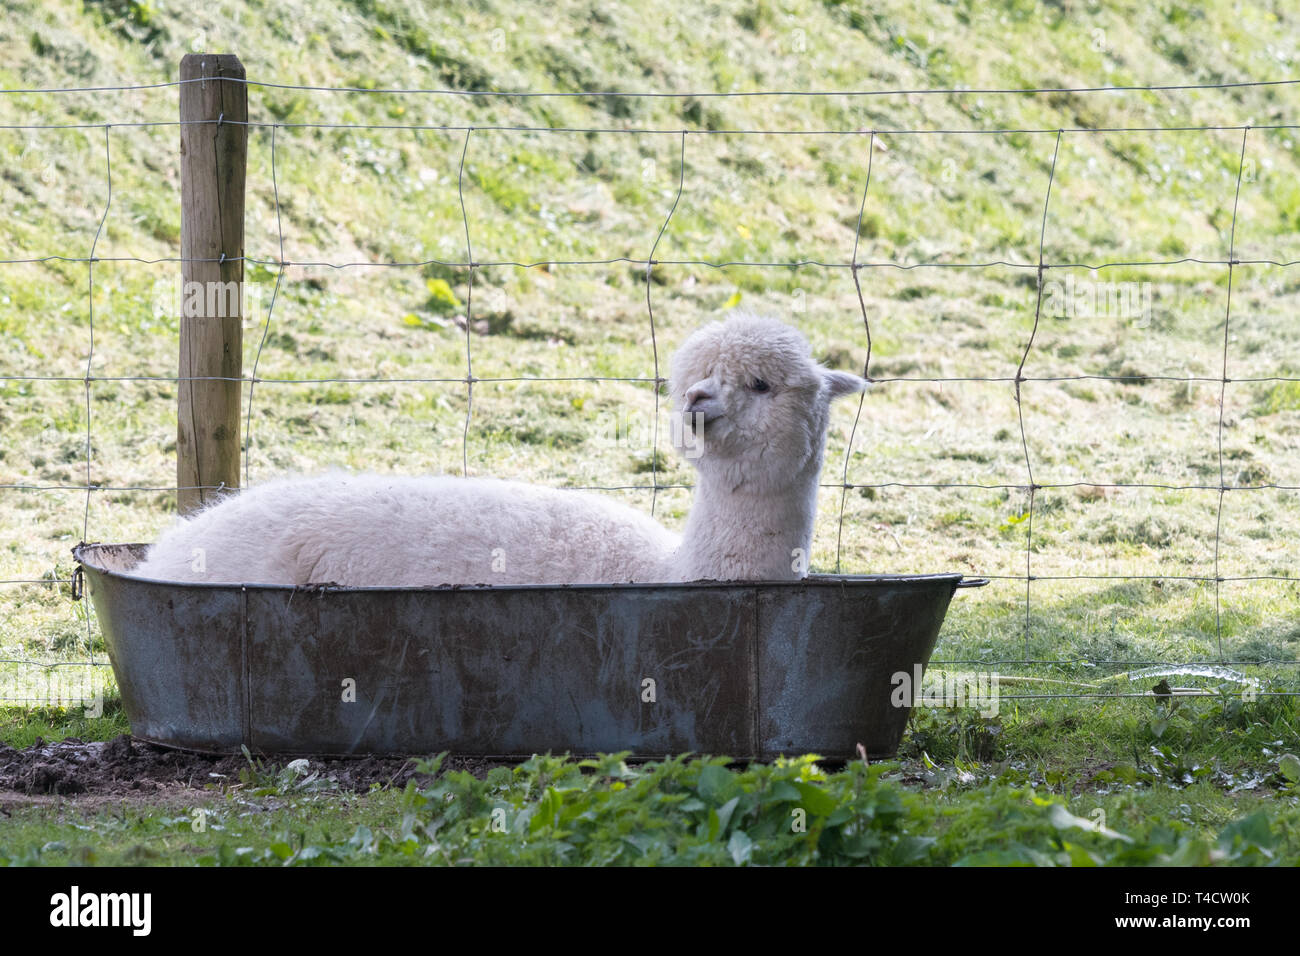 Alpaca cooling down in a bathtub - Lakes Distillery, Setmurthy, Cumbria, England, UK Stock Photo